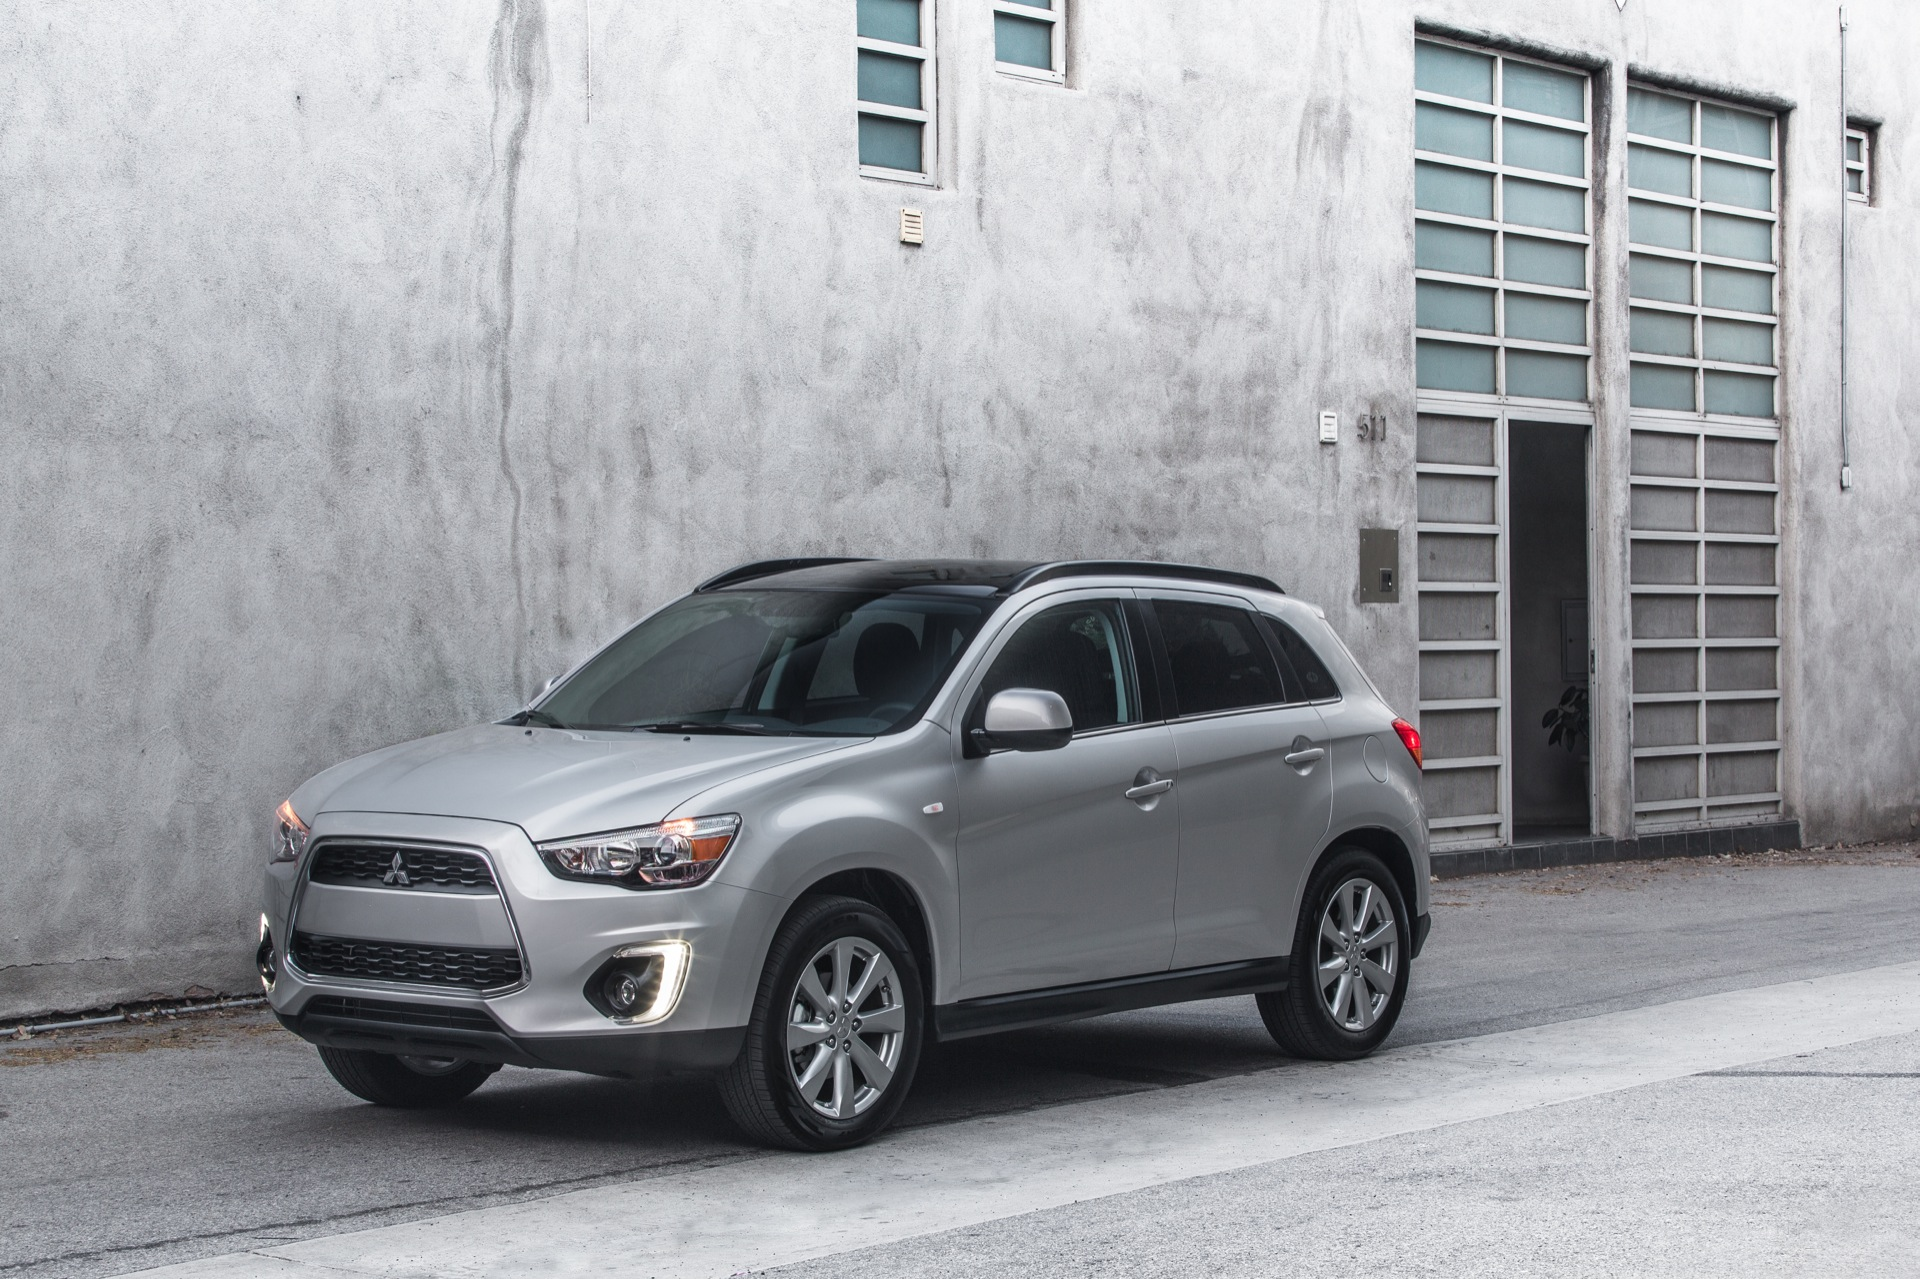 2015 mitsubishi outlander sport review ratings specs prices and photos the car connection. Black Bedroom Furniture Sets. Home Design Ideas